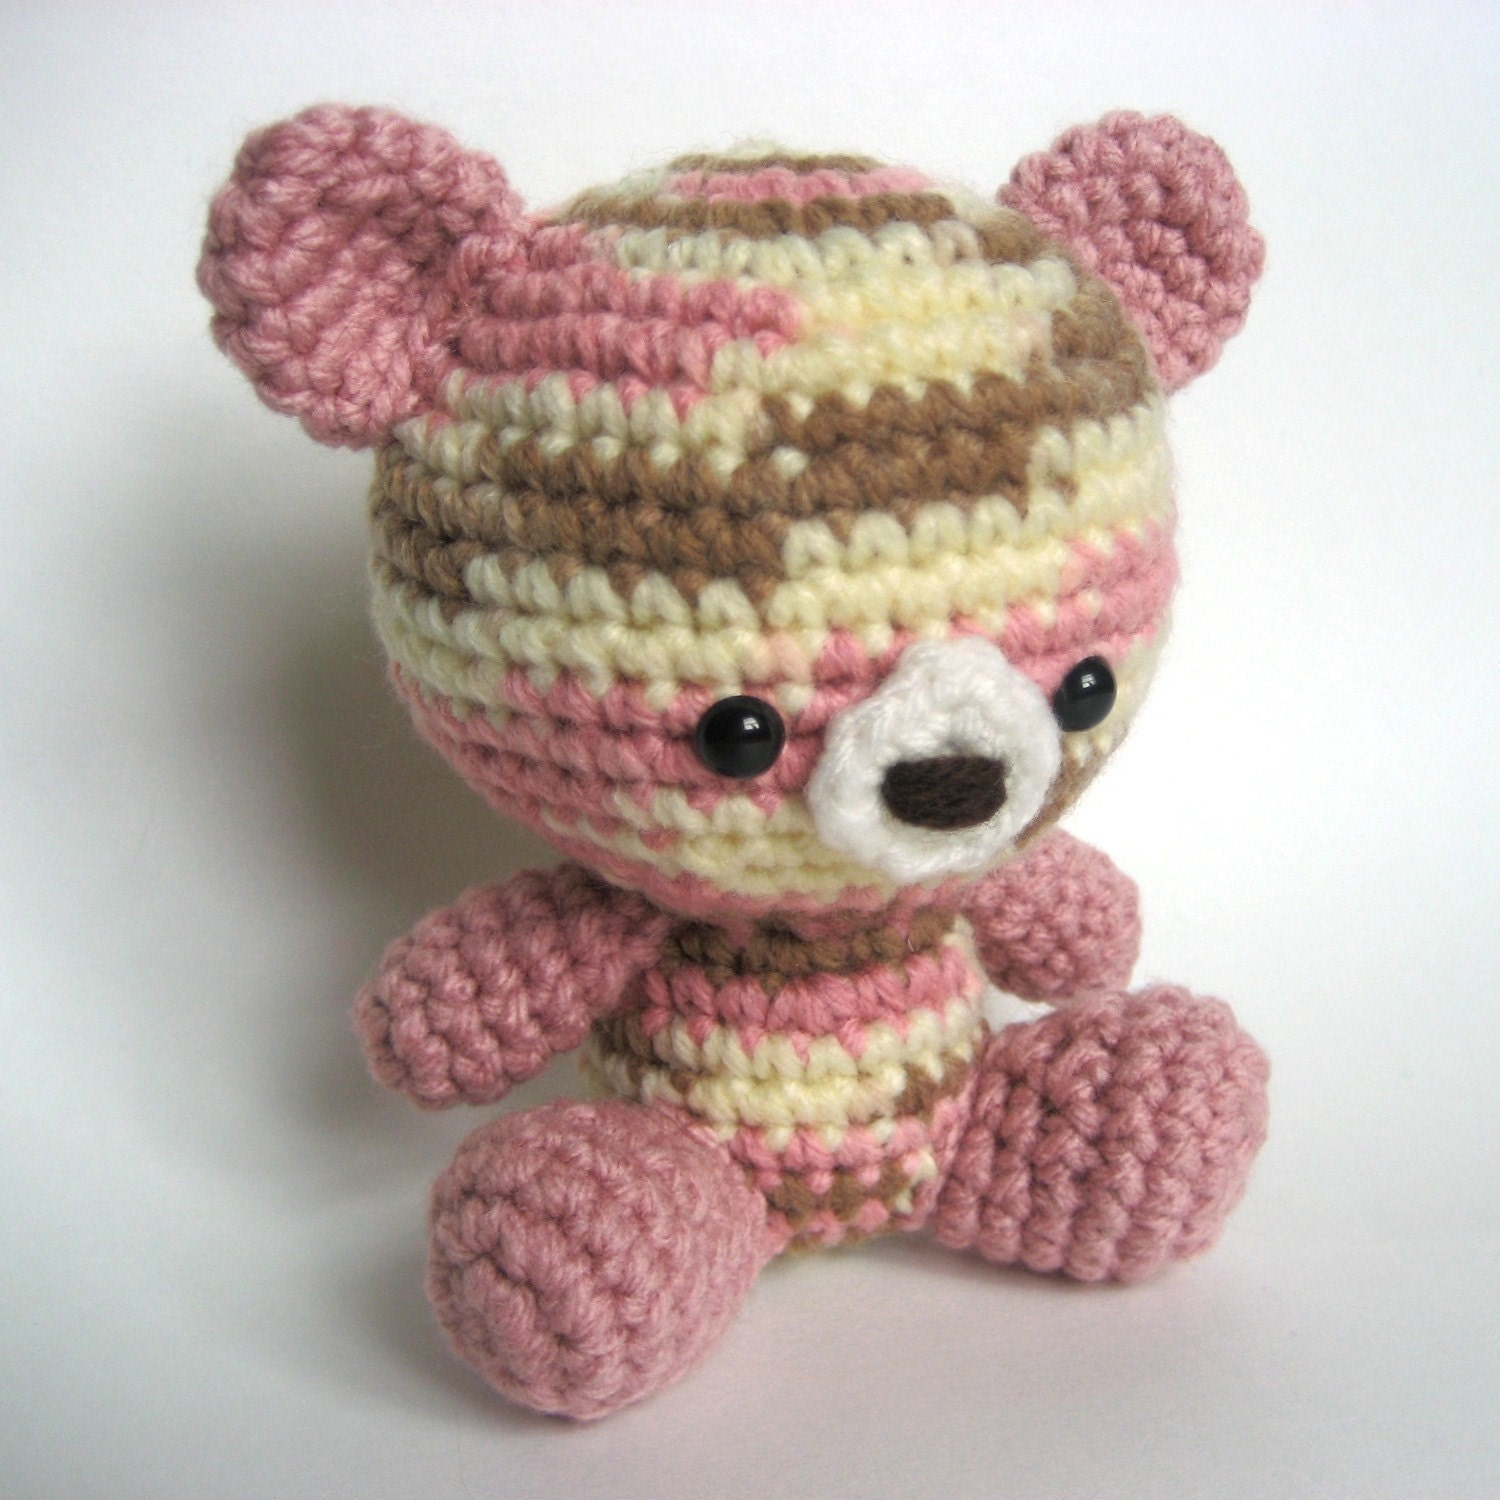 Amigurumi Wool : Amigurumi Crochet Teddy Bear Pattern